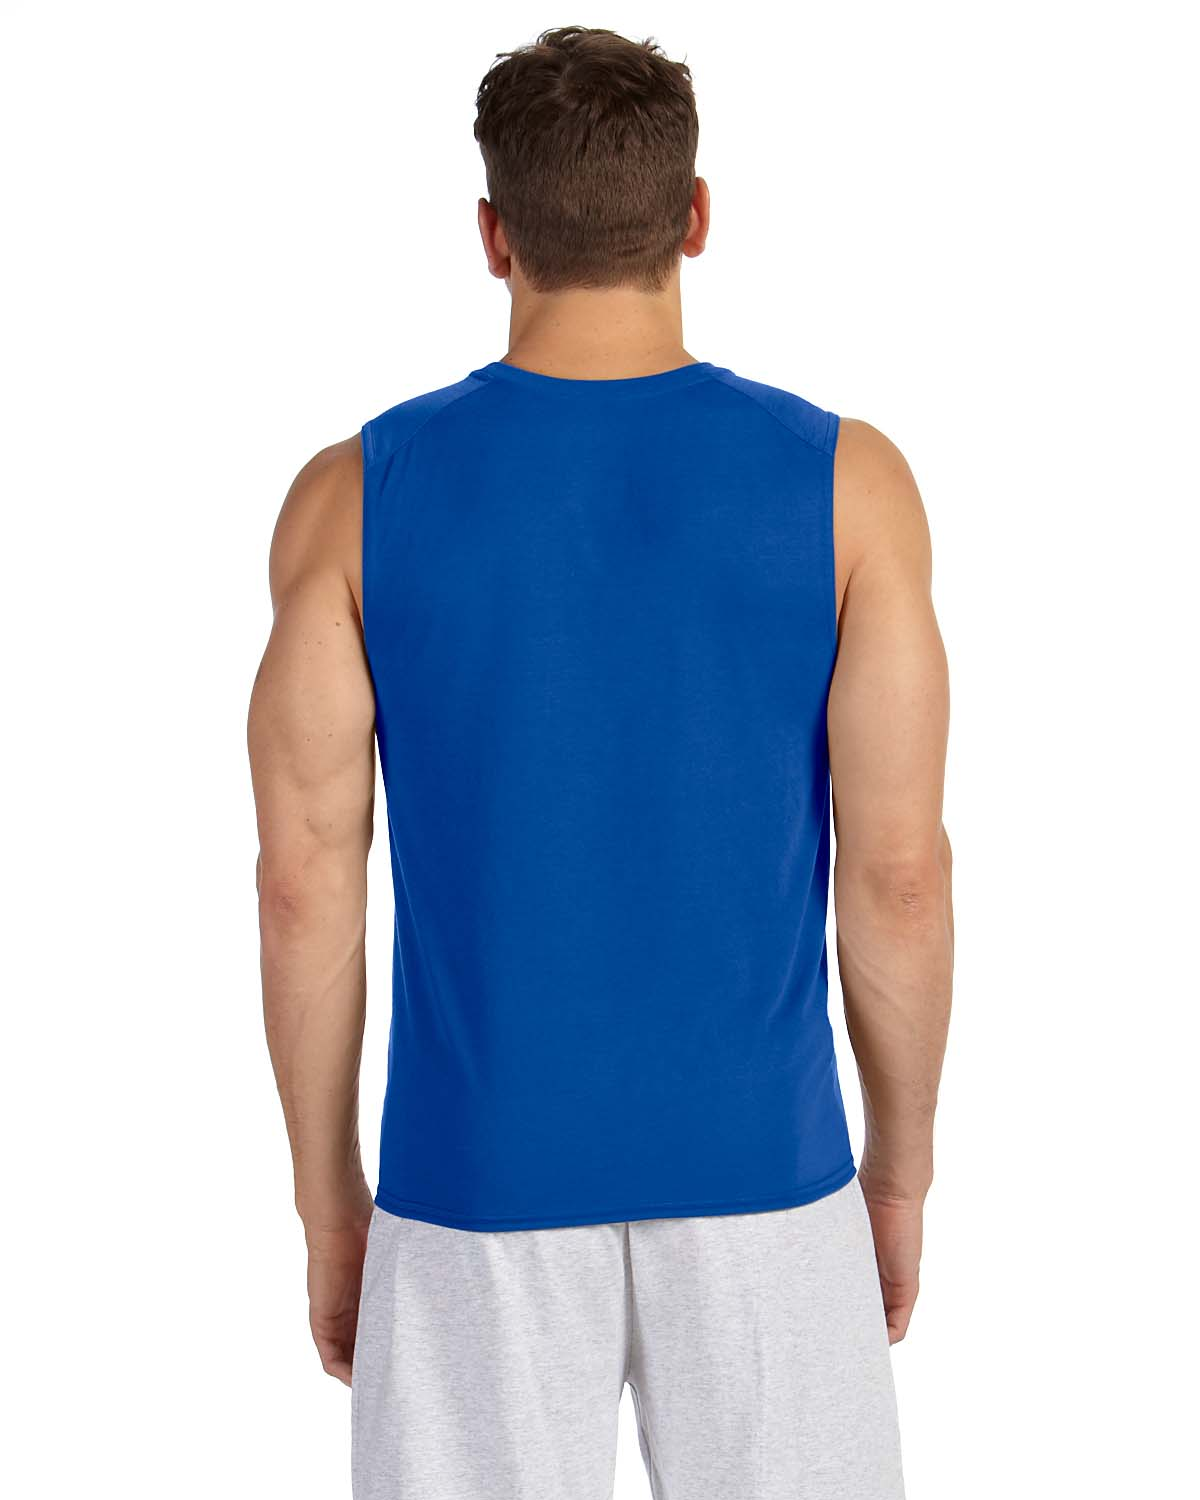 New gildan performance dri fit sleeveless muscle t shirt for What is a performance t shirt